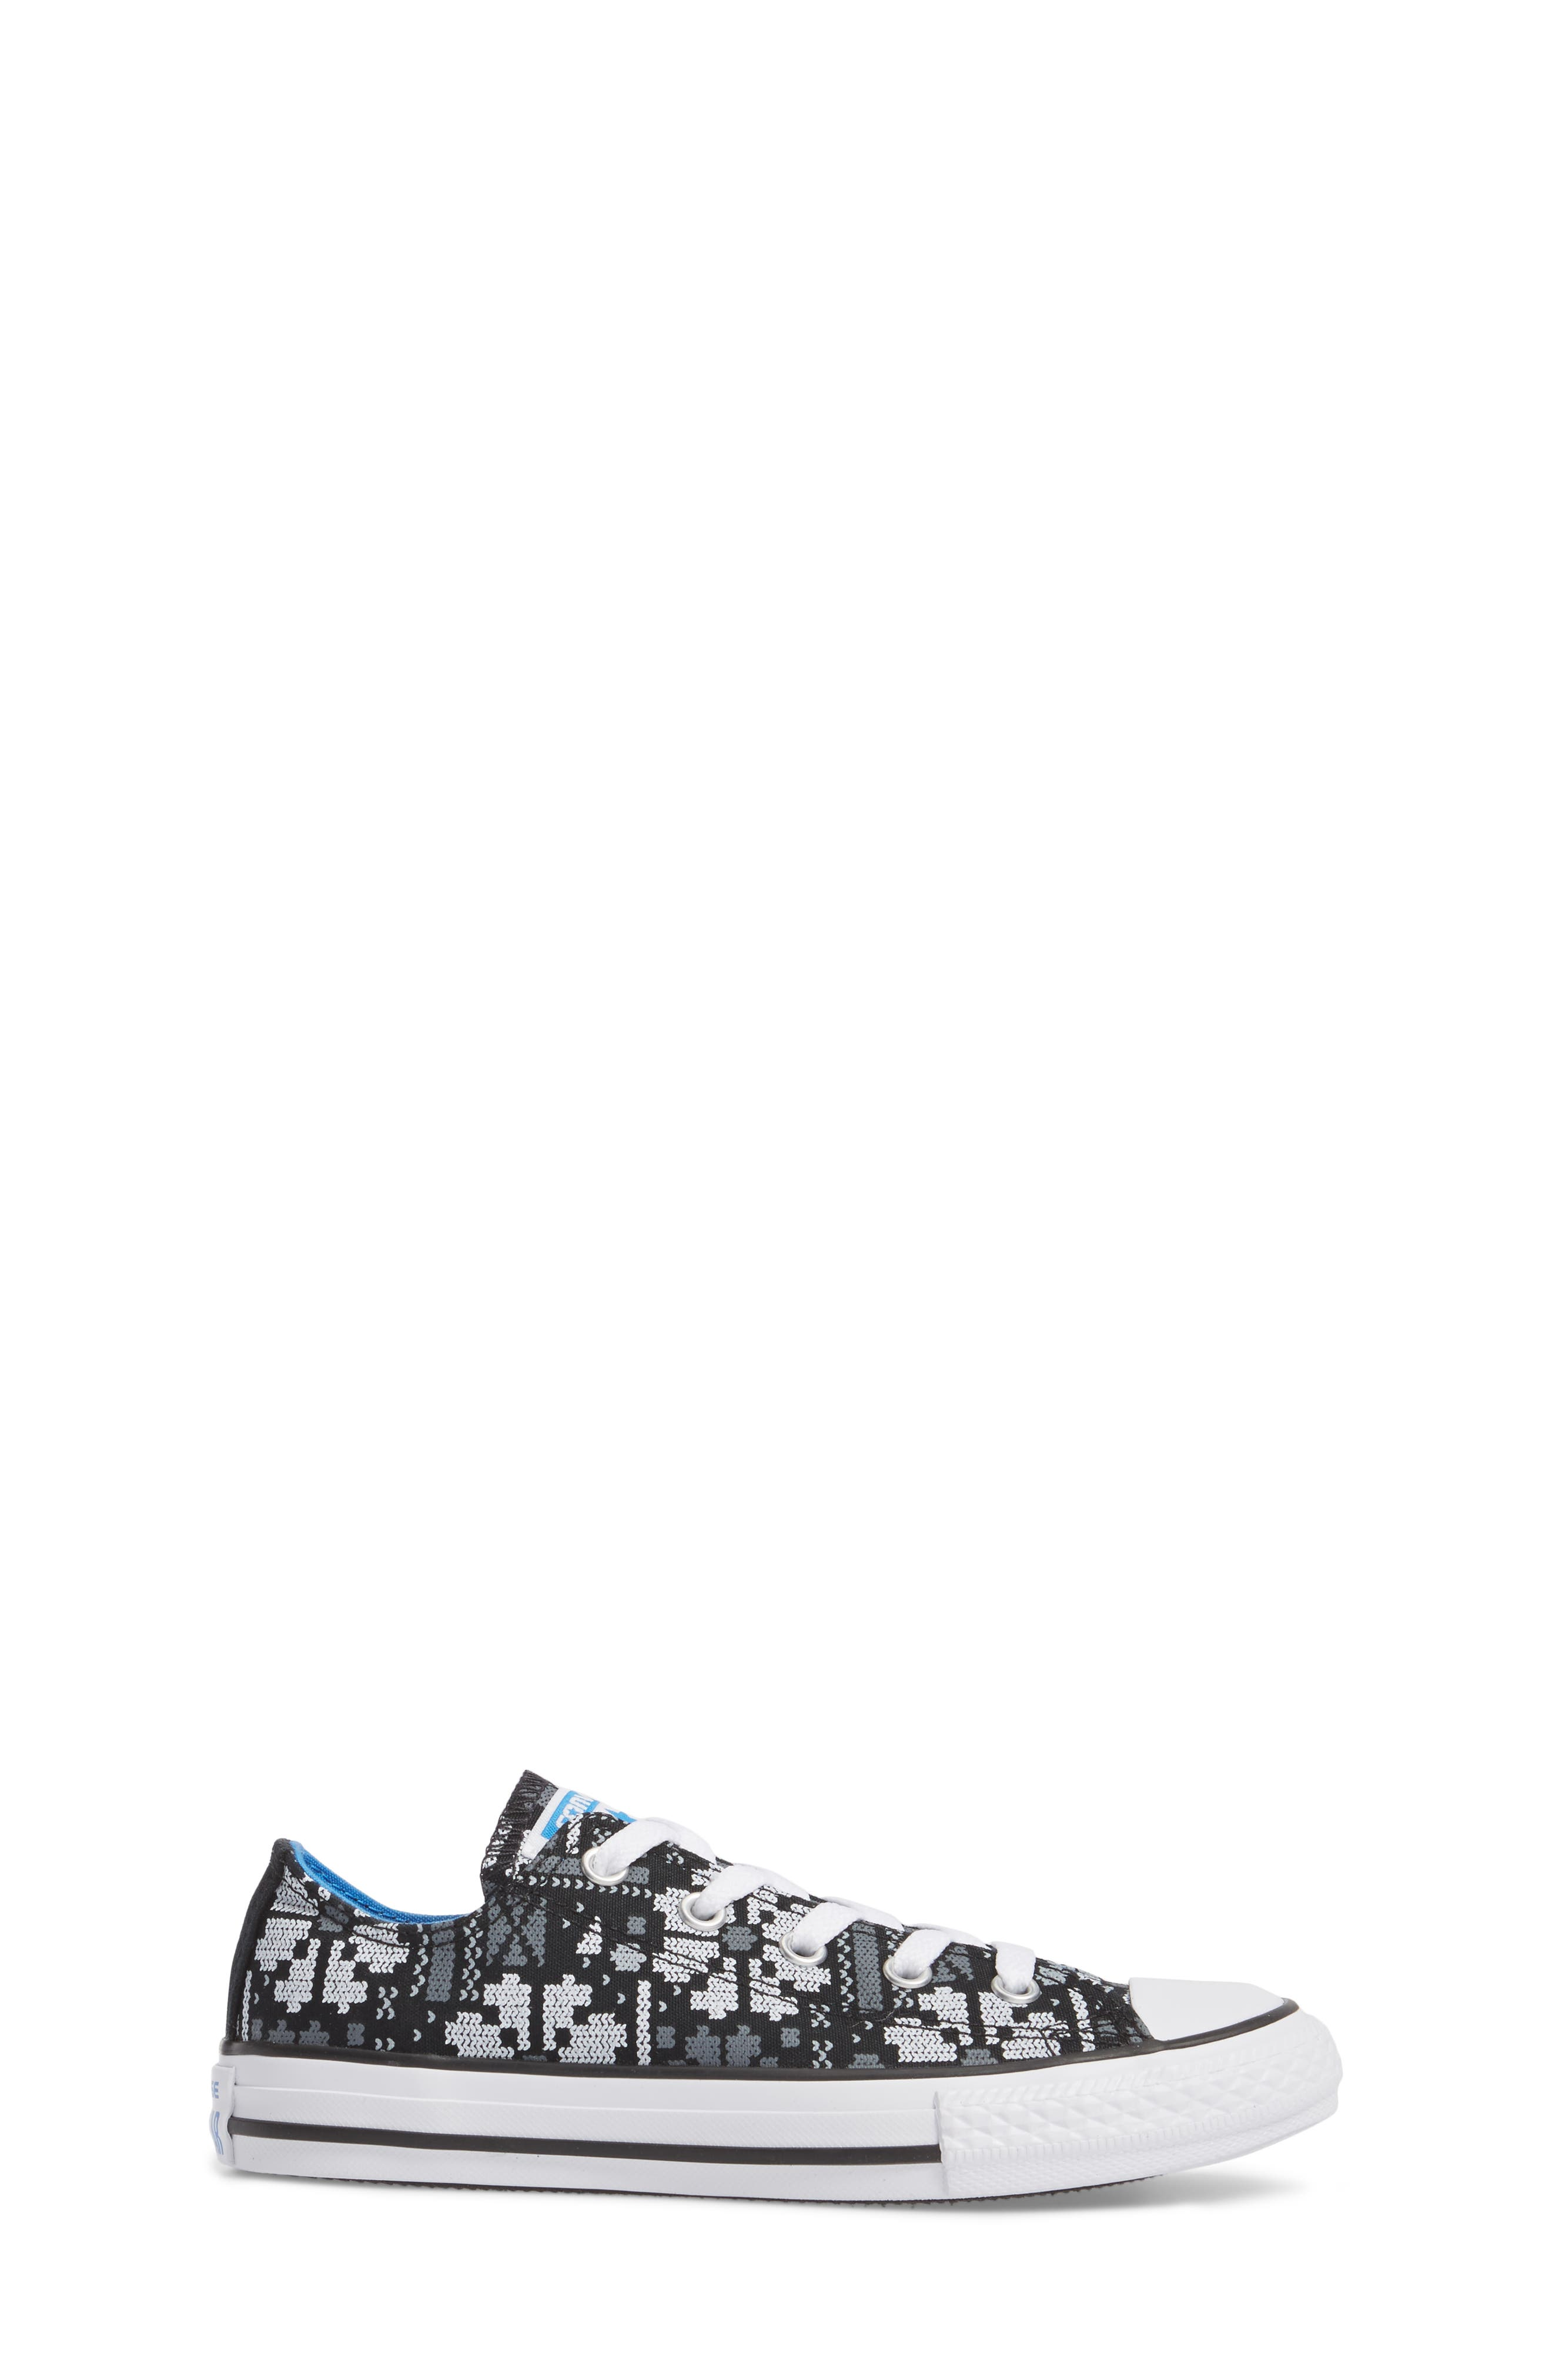 Chuck Taylor<sup>®</sup> All Star<sup>®</sup> Winter Ox Sneaker,                             Alternate thumbnail 3, color,                             Black Canvas